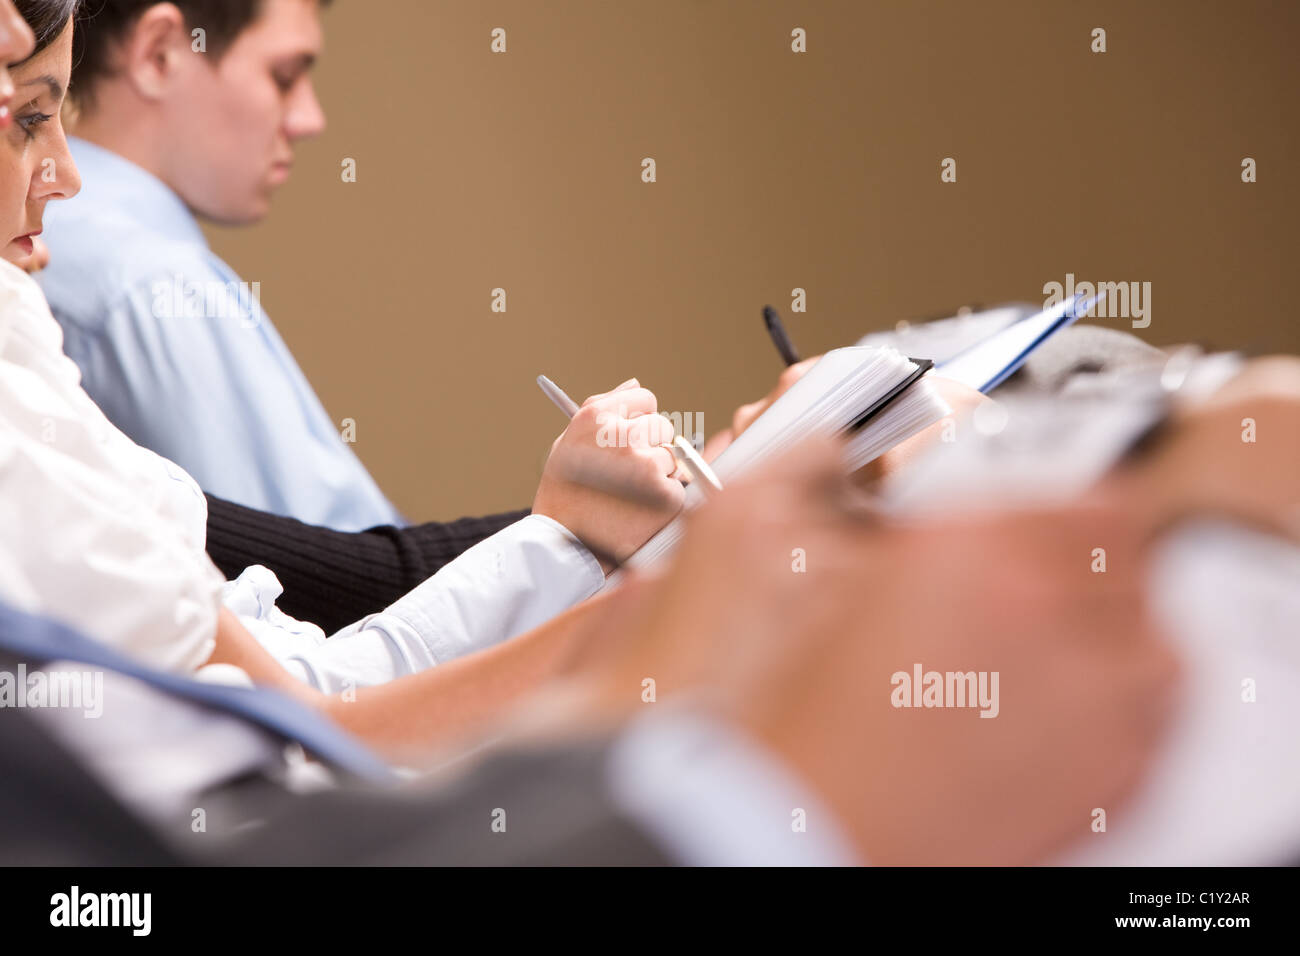 Close-up of female making notes or writing business plan at conference - Stock Image